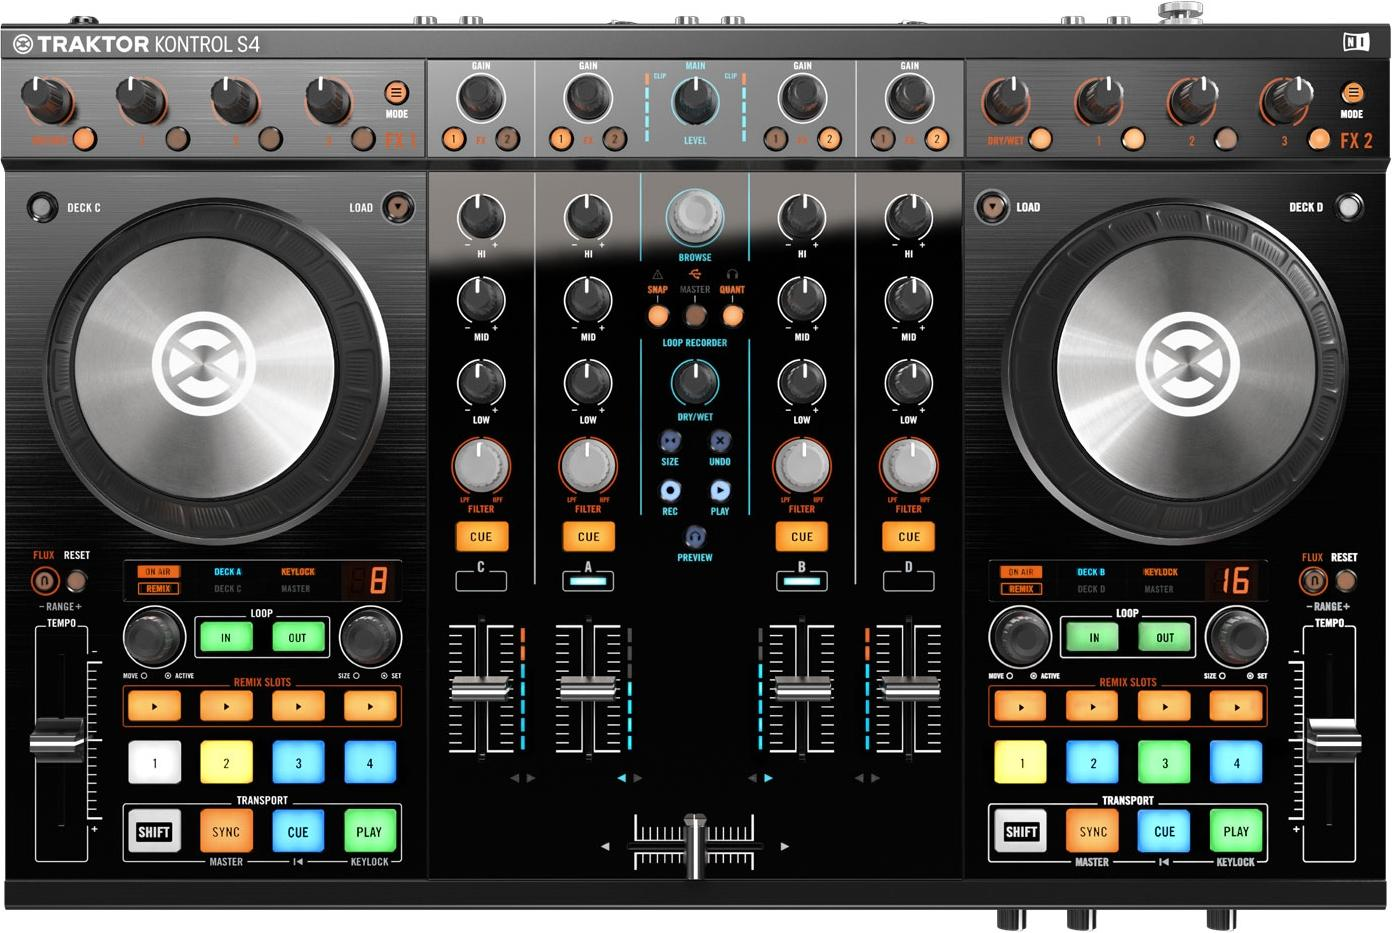 TRAKTOR S4 WINDOWS 7 64BIT DRIVER DOWNLOAD